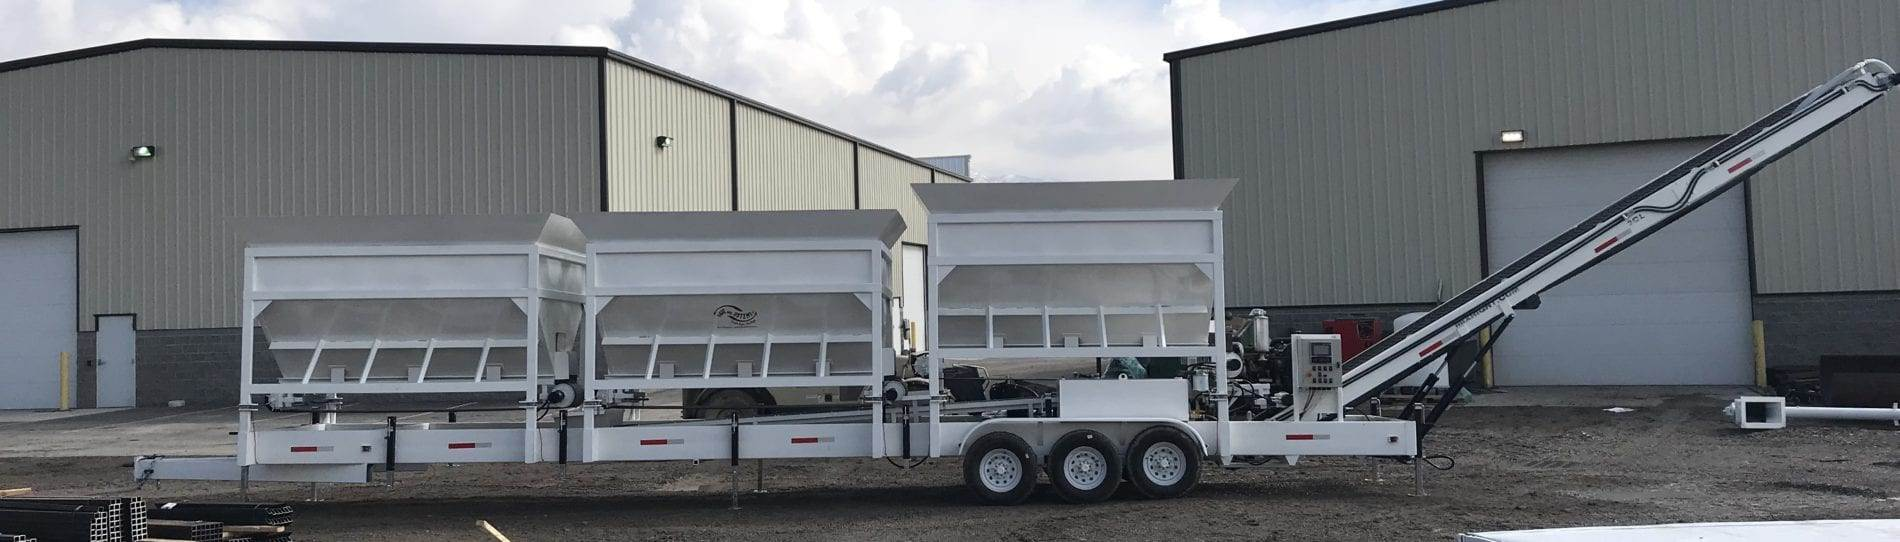 Portable Concrete Batching Plant 36+ Cubic Yards Automated Mix Right 2CL-36-3 at Right Manufacturing Systems Inc. Lindon, Utah